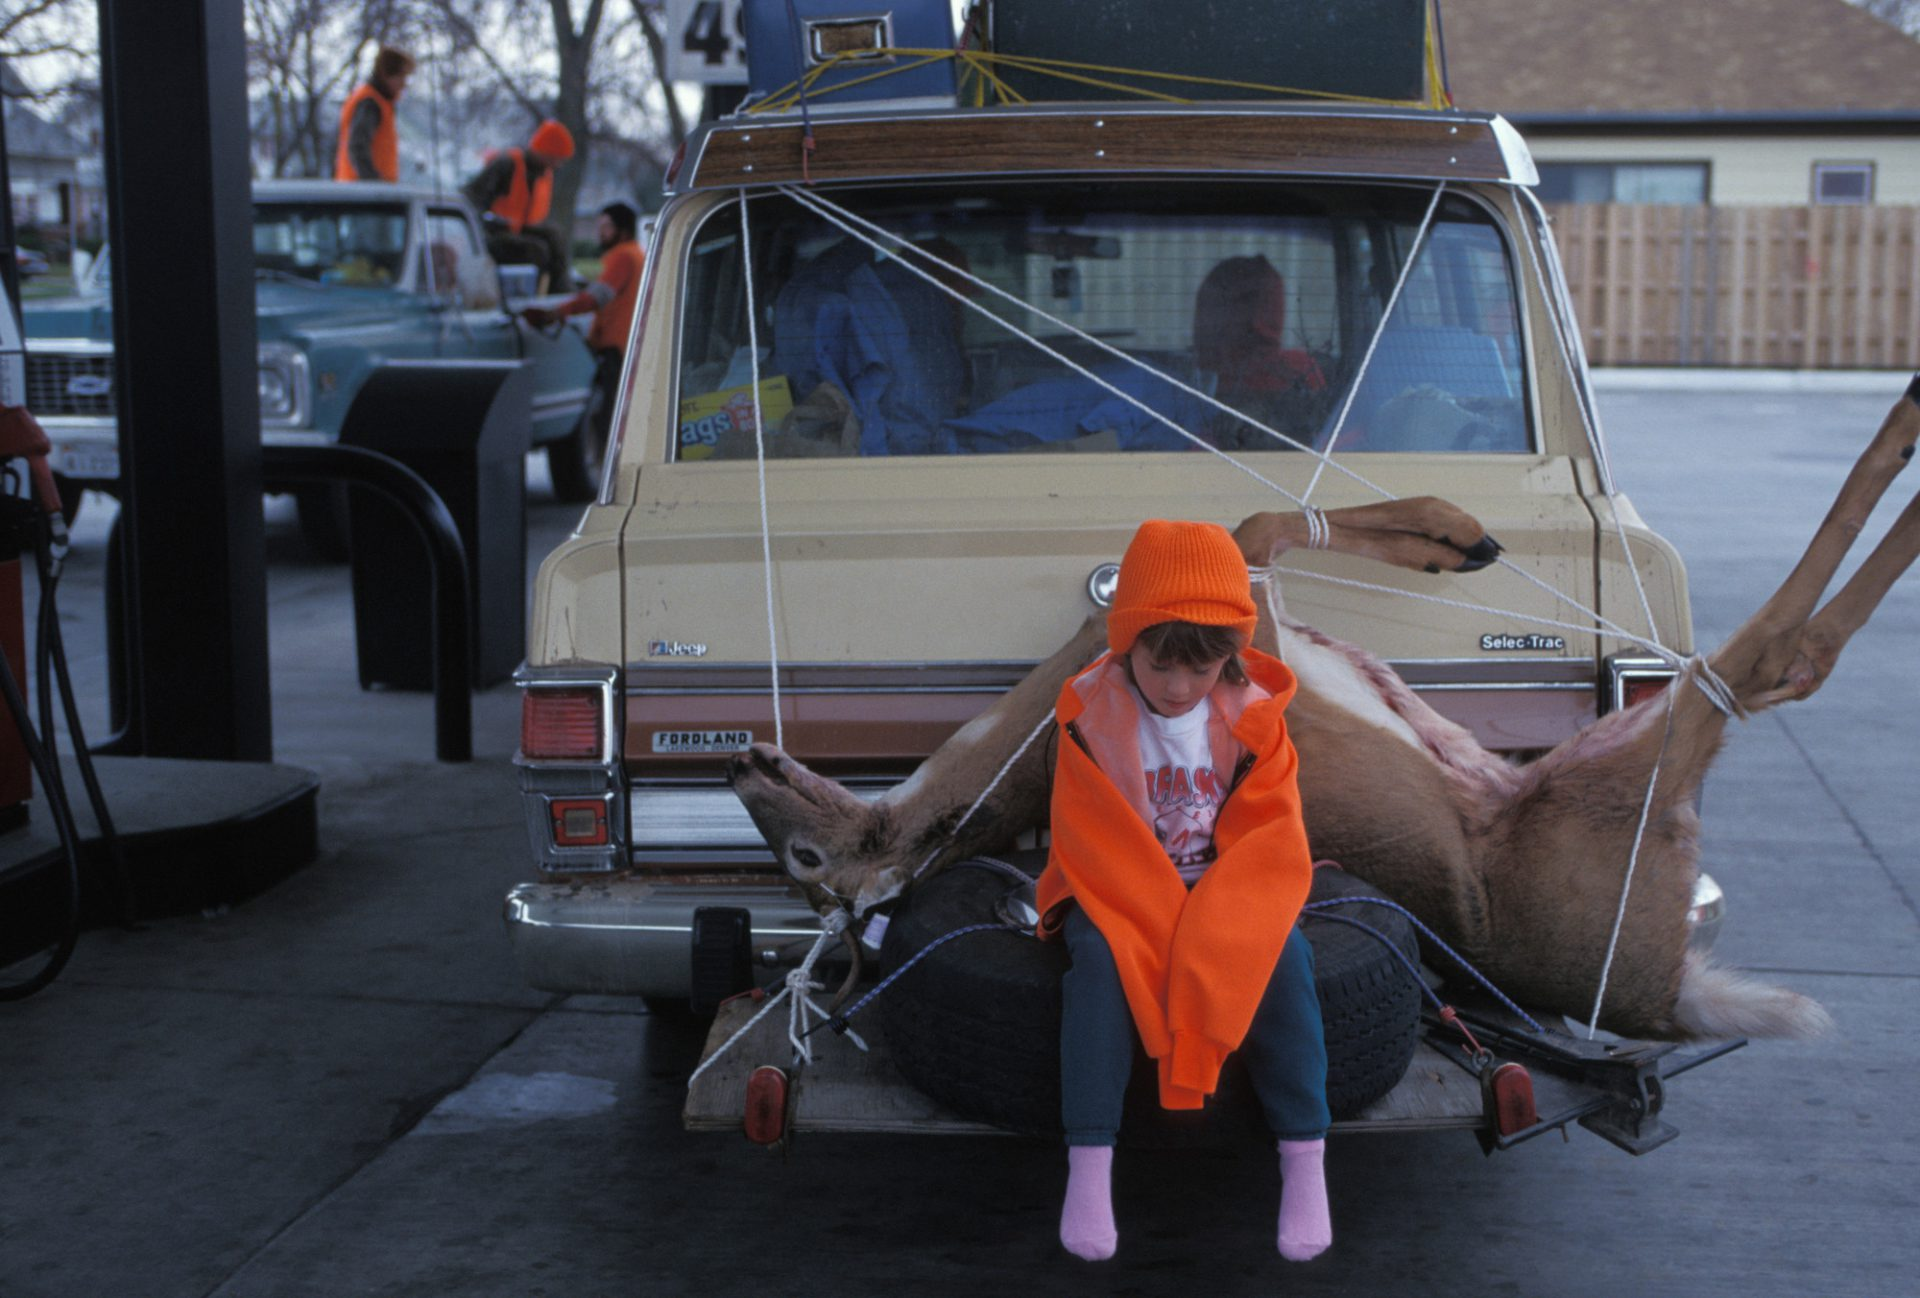 Photo: A young girl waits near a dead deer at a gas station in Broken Bow, Nebraska.